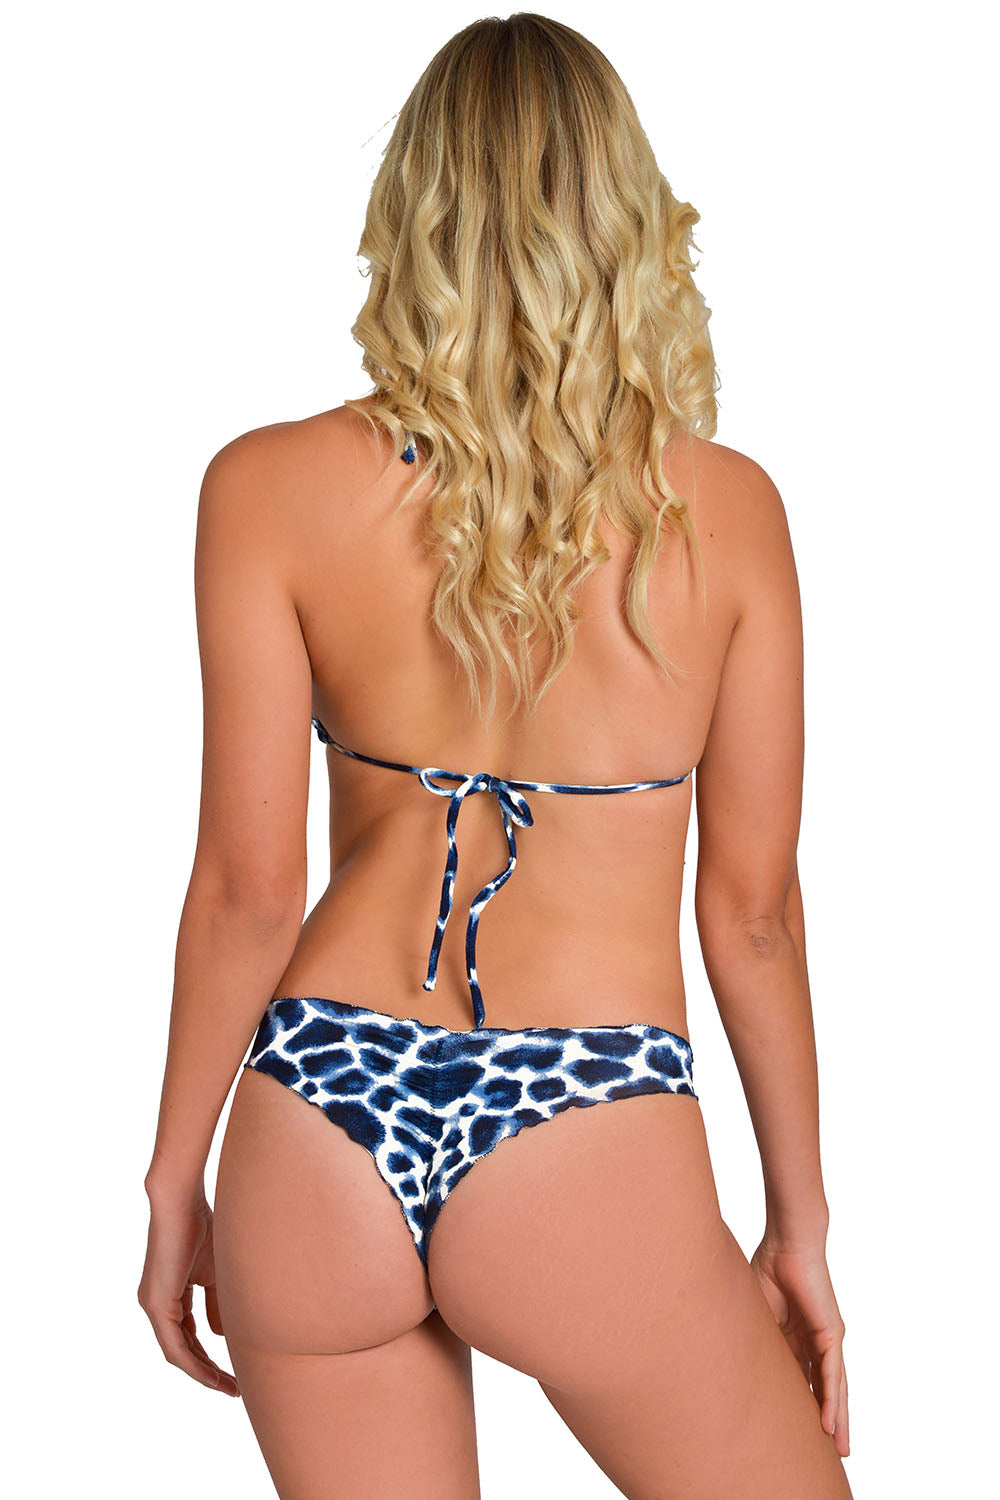 BLUE JAGUAR Less Coverage Signature Bottom